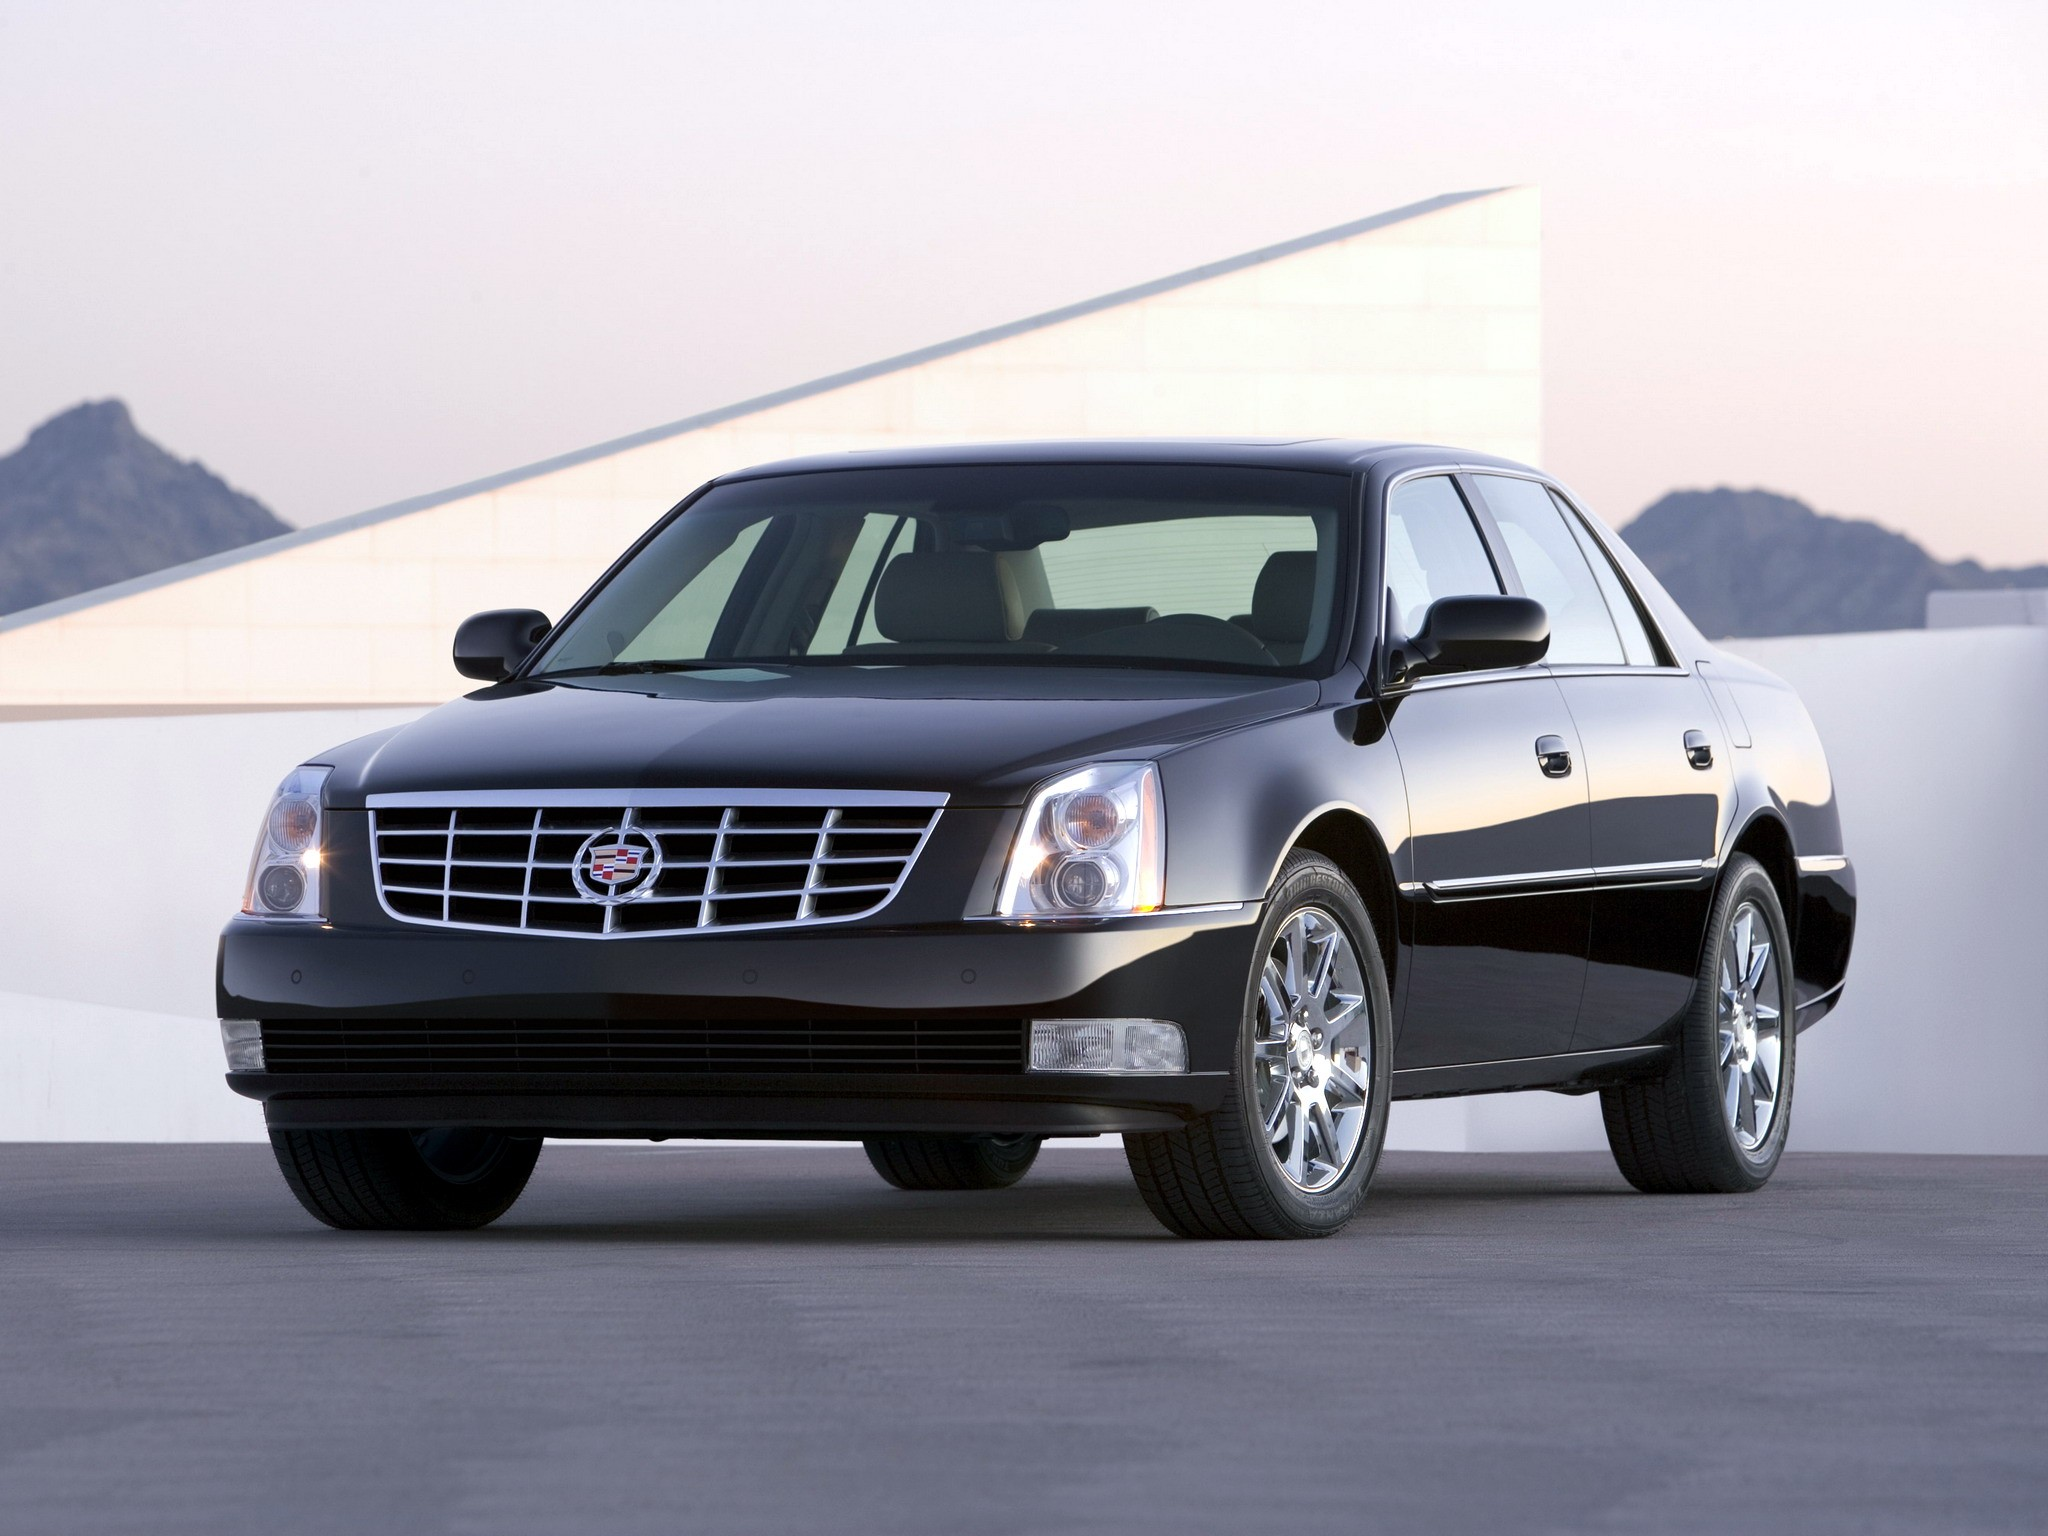 funeral used img statesman larger hearse cadillac a view thumbnails photo to see specialty click dts superior